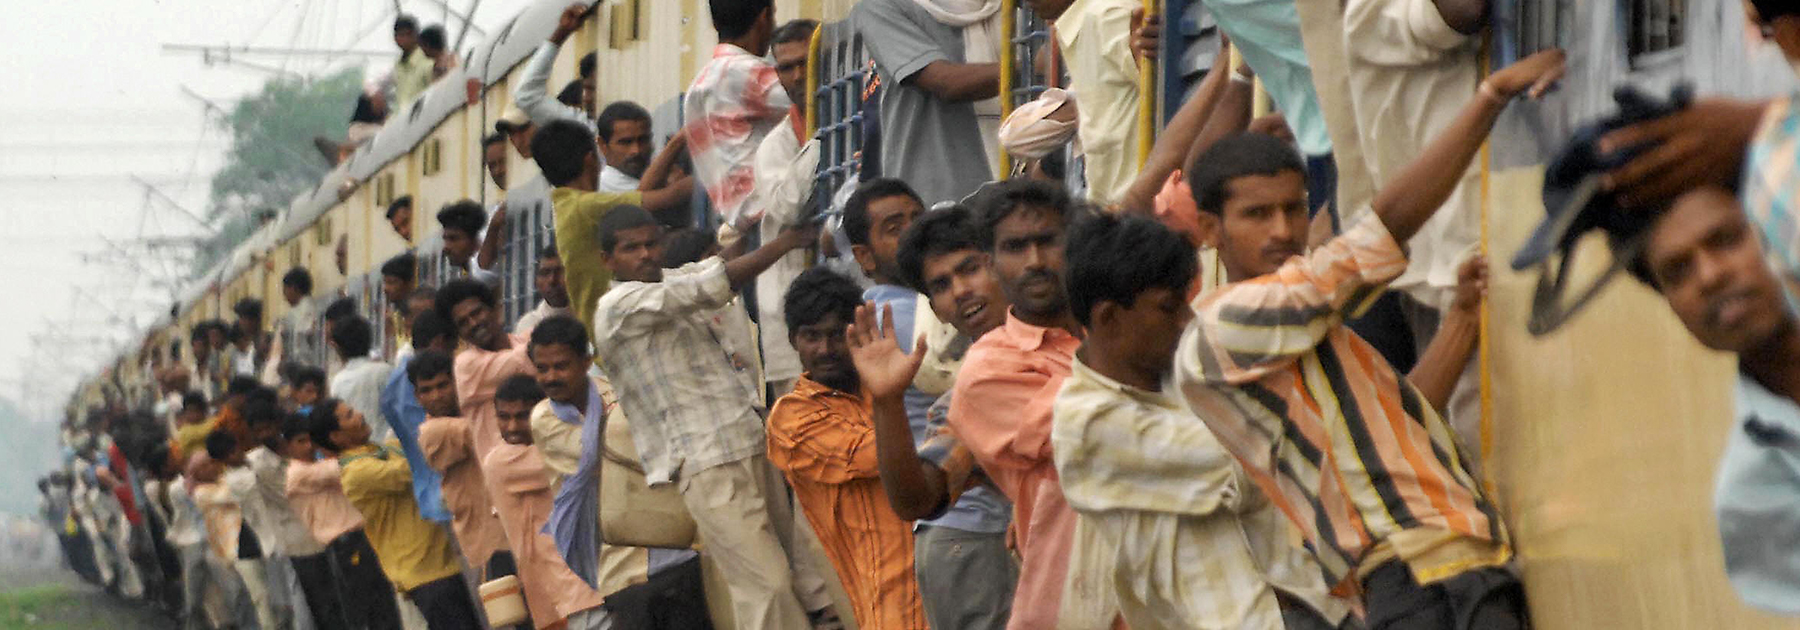 Commuters overcrowd a local passenger train on the Patna-Gaya railway track in Patna. (STR/AFP/Getty Images)